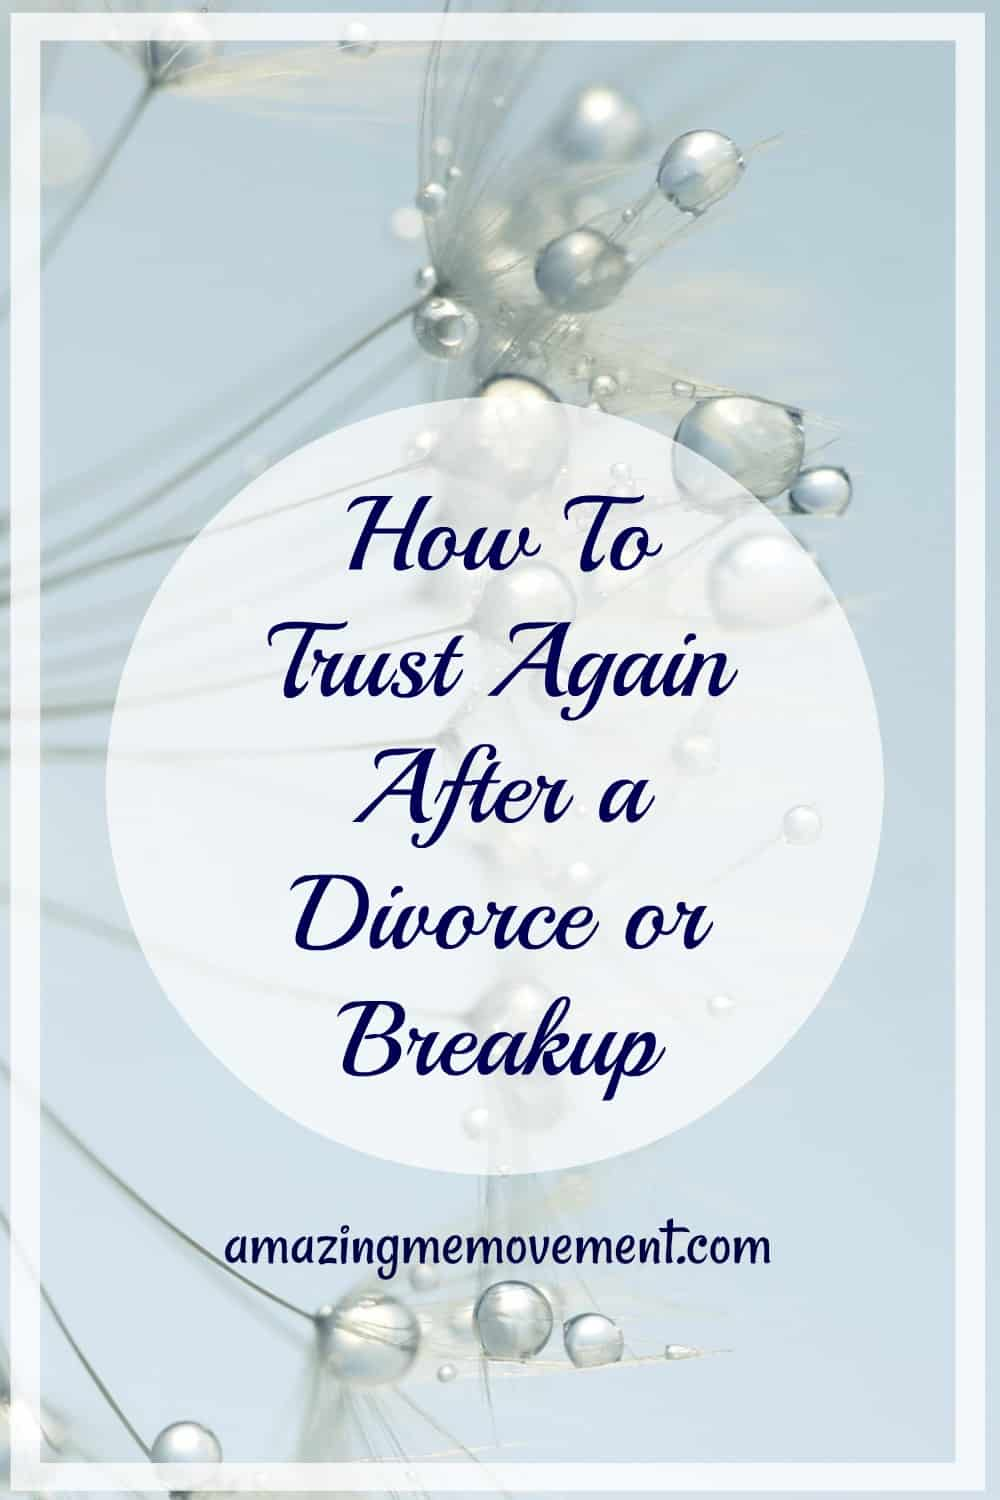 How to trust again after a divorce